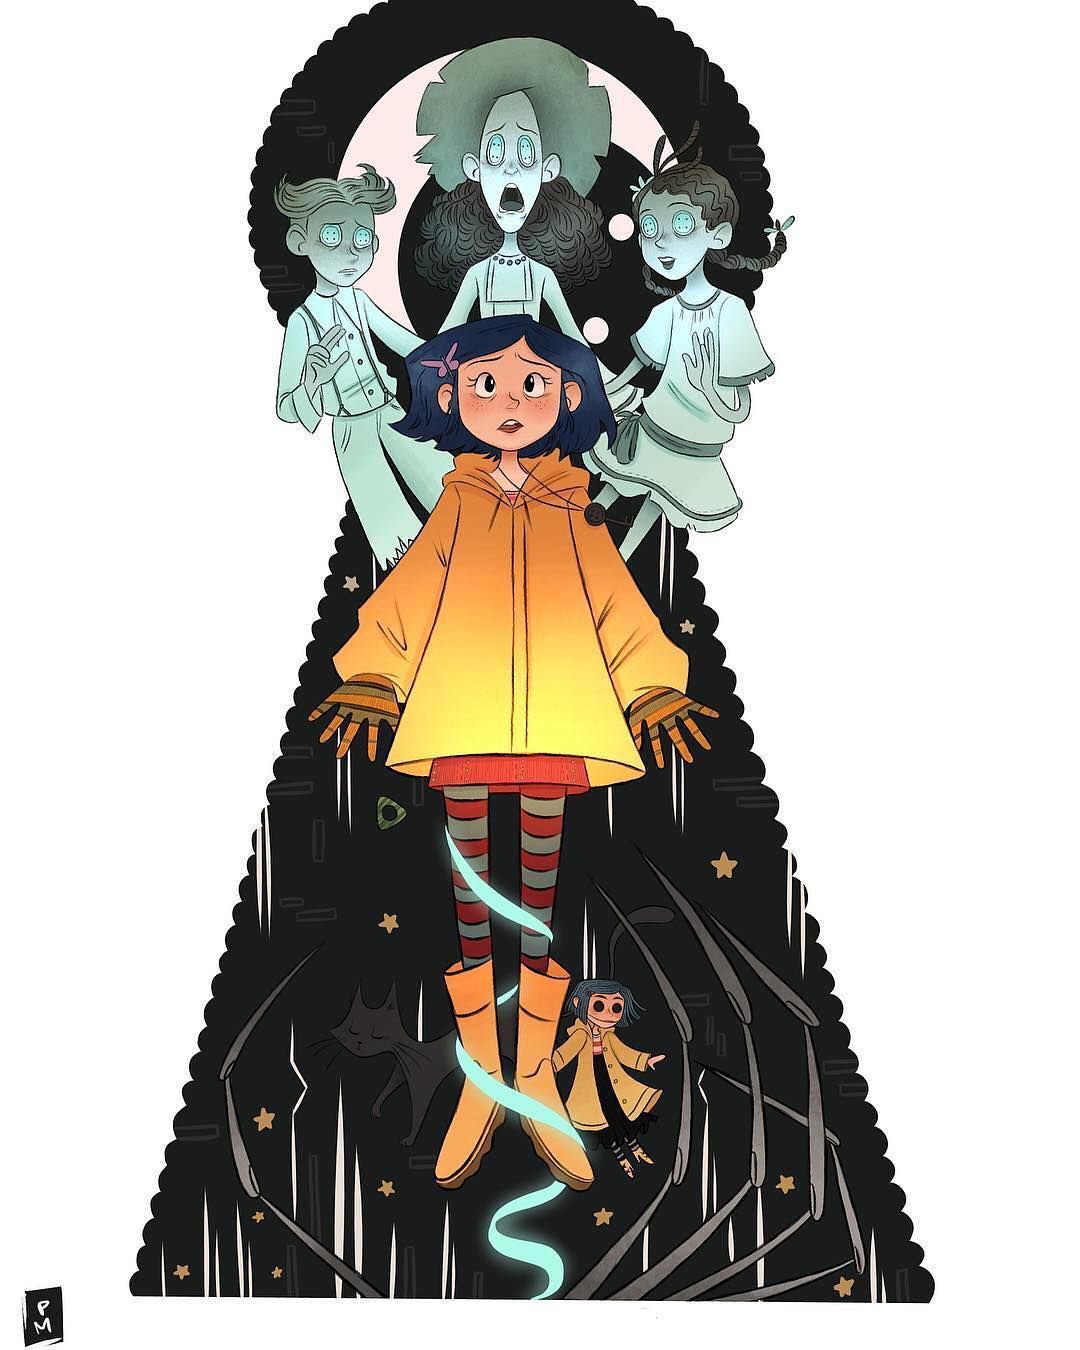 Awesome Coraline Fanart For The Hot Topic Contest Do You Have Any Fanart You Want Me To See Or Repost Just Tag Me In Y Coraline Jones Coraline Coraline Movie